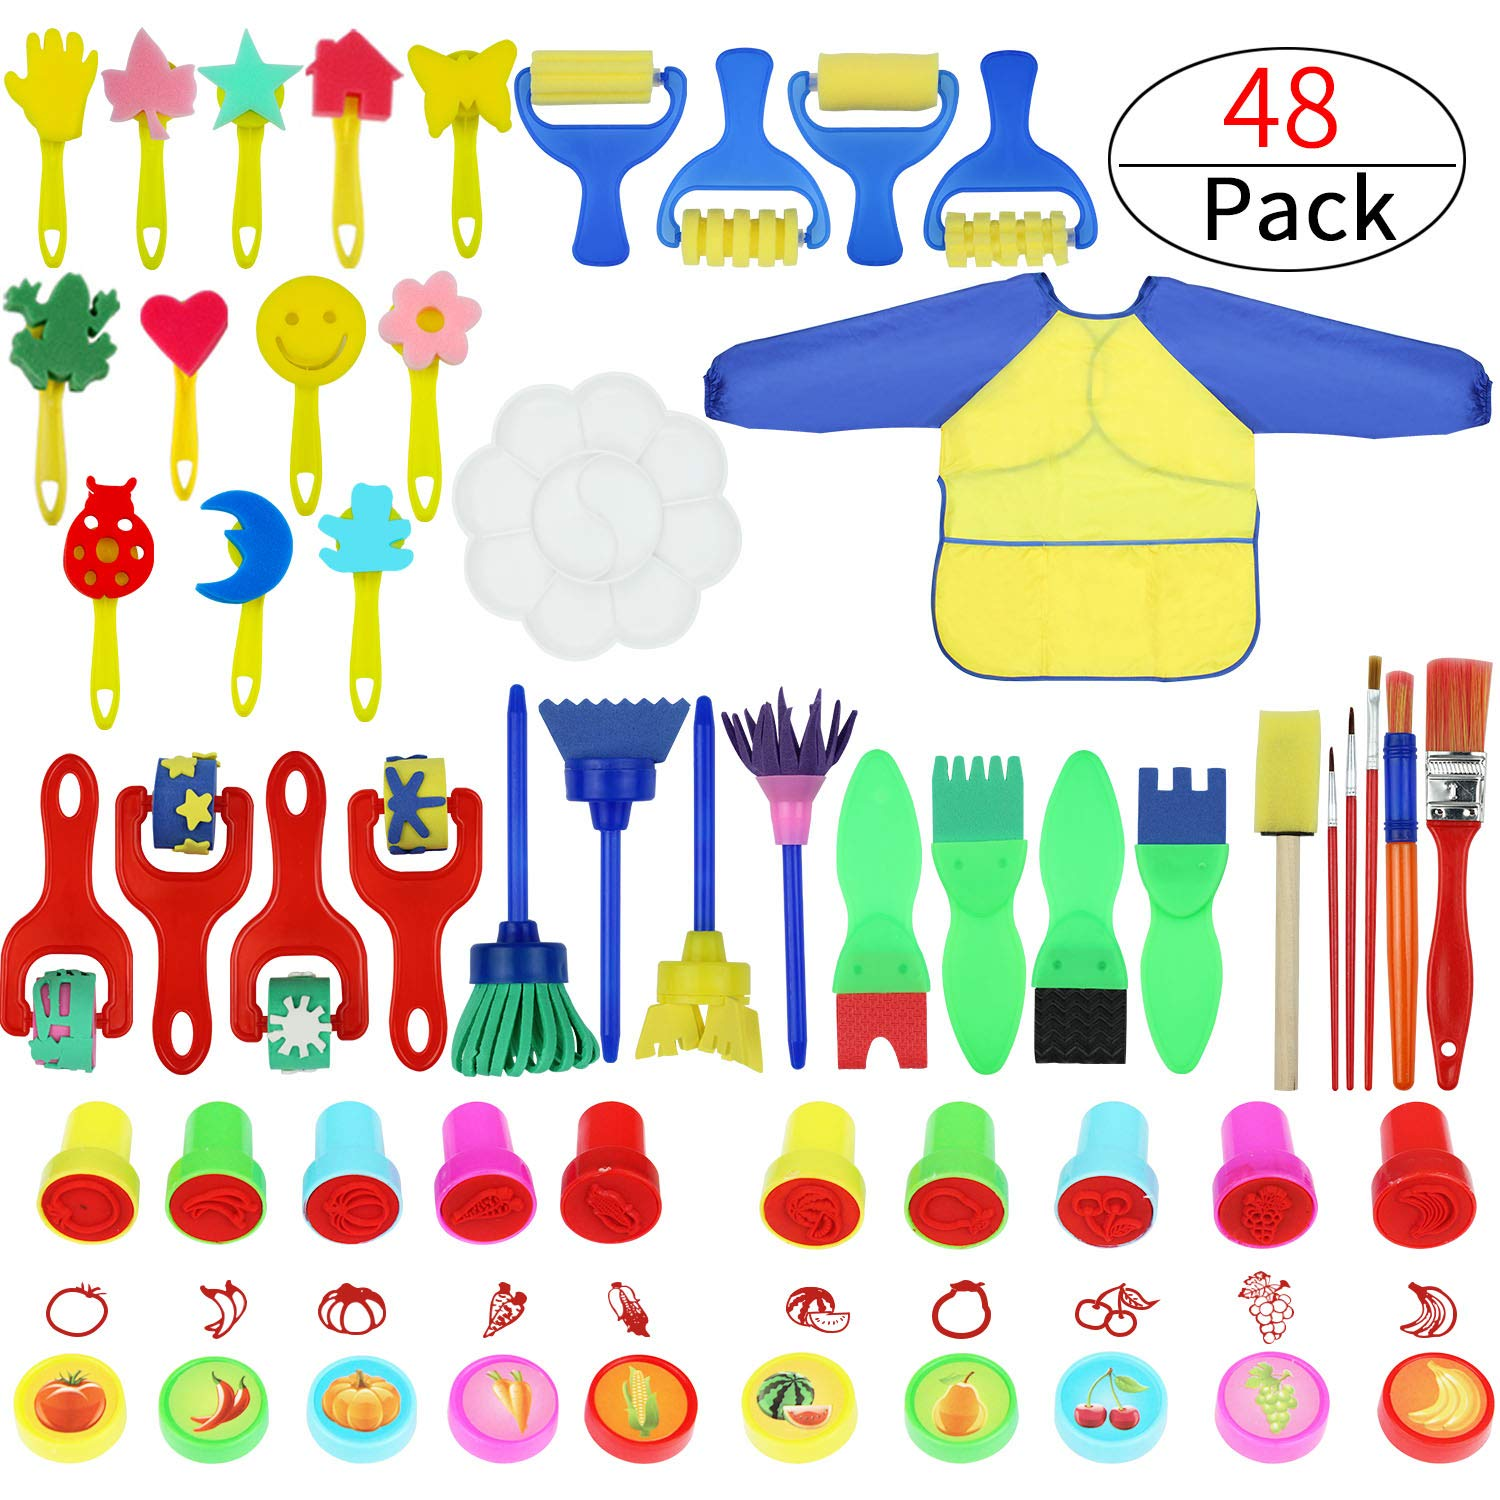 Painting Kits for Kids,Early Learning Kids Paint Set,Paint Sponges for Kids,77PCS Mini Flower Sponge Paint Brushes and Toys. Assorted Painting Drawing Tools in a Clear Durable Storage Pouch (48PCS)